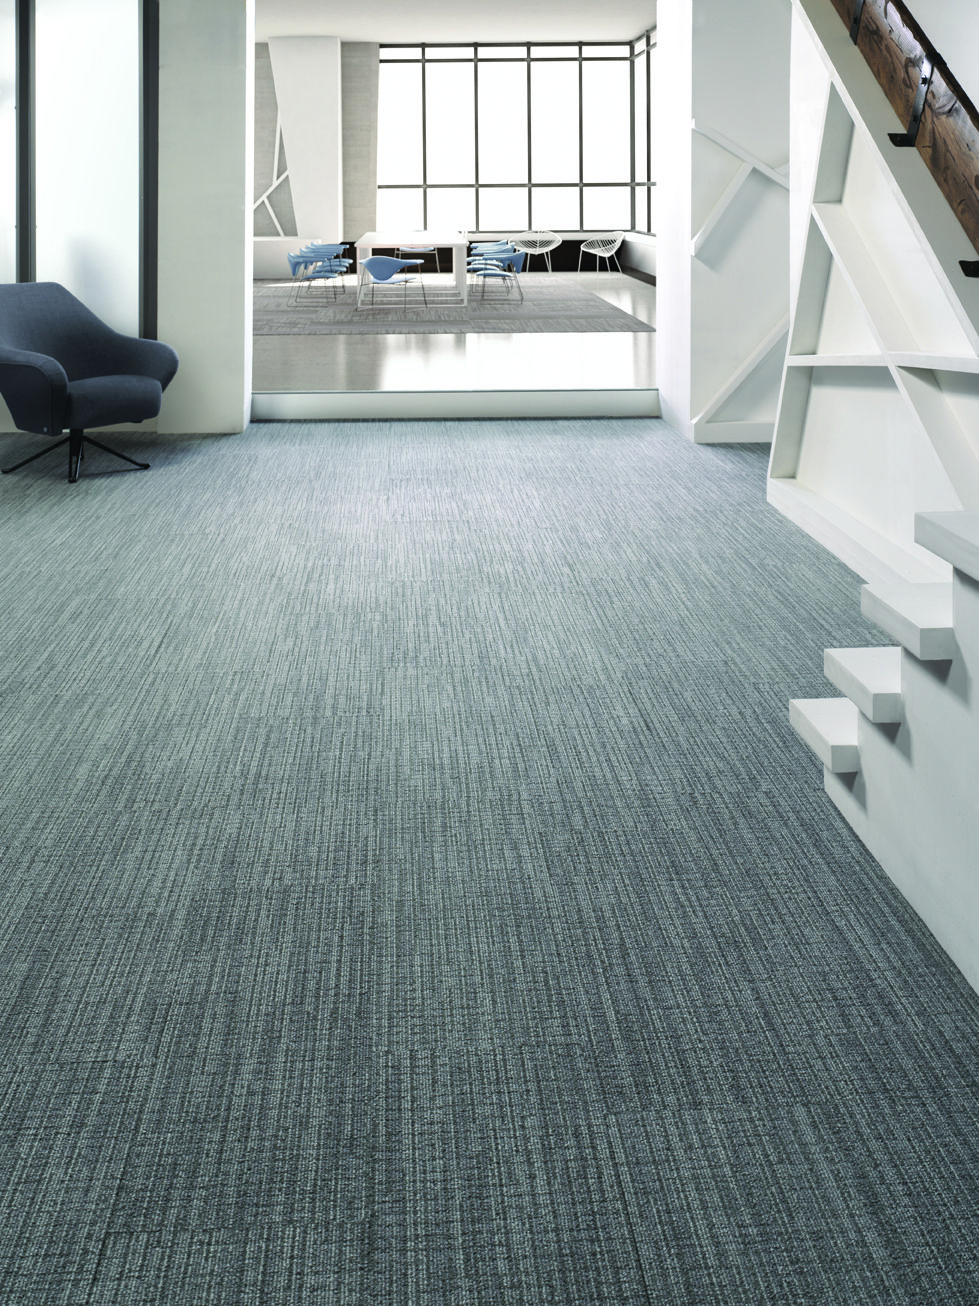 Inseam Tile 12BY36, Lees Commercial Modular Carpet